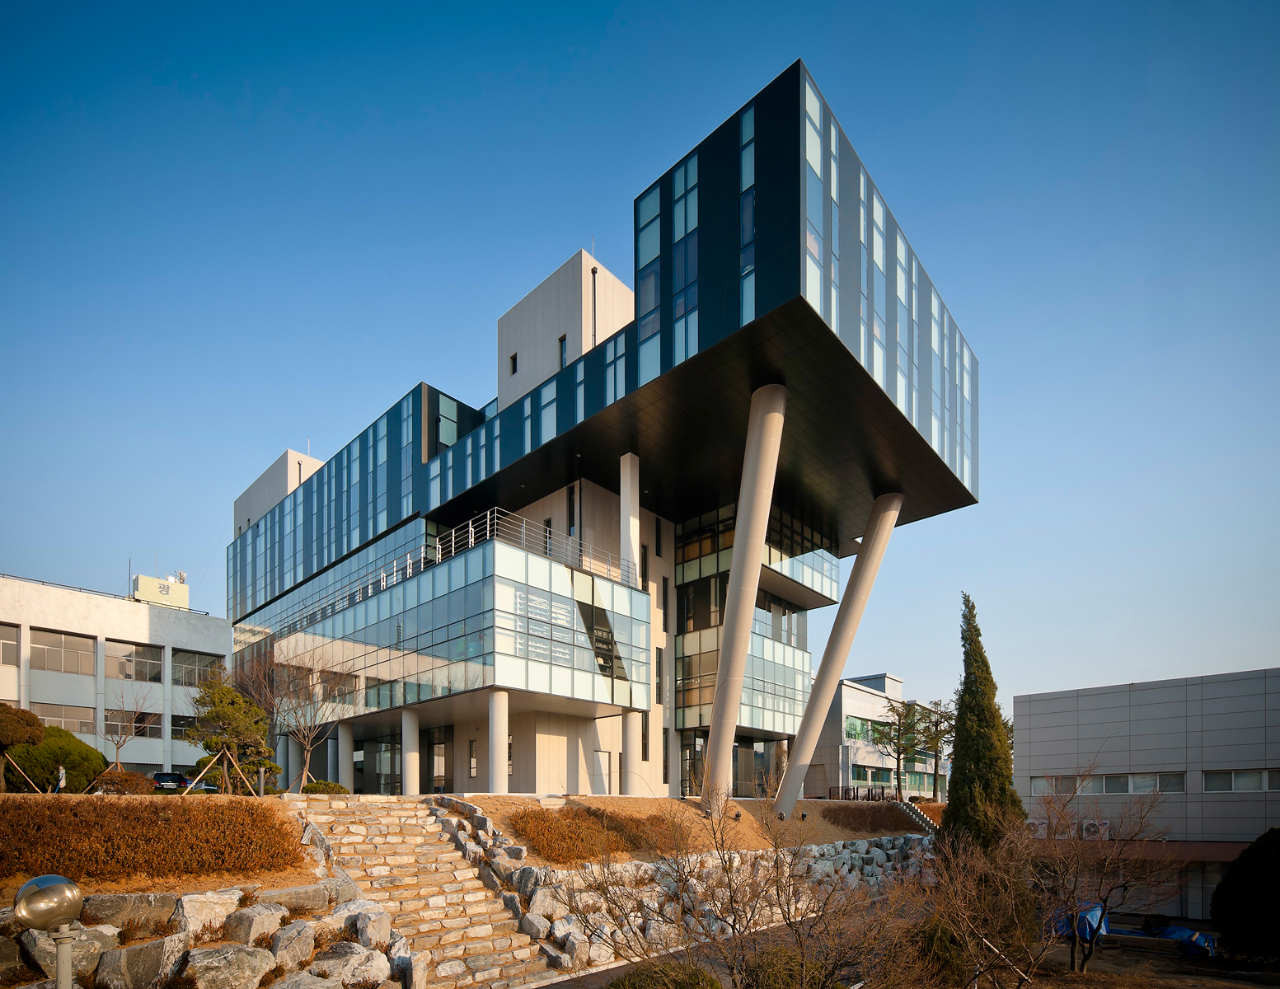 Engineering college korea polytechnic vi baum architects for Home of architecture planning for engineering consultants